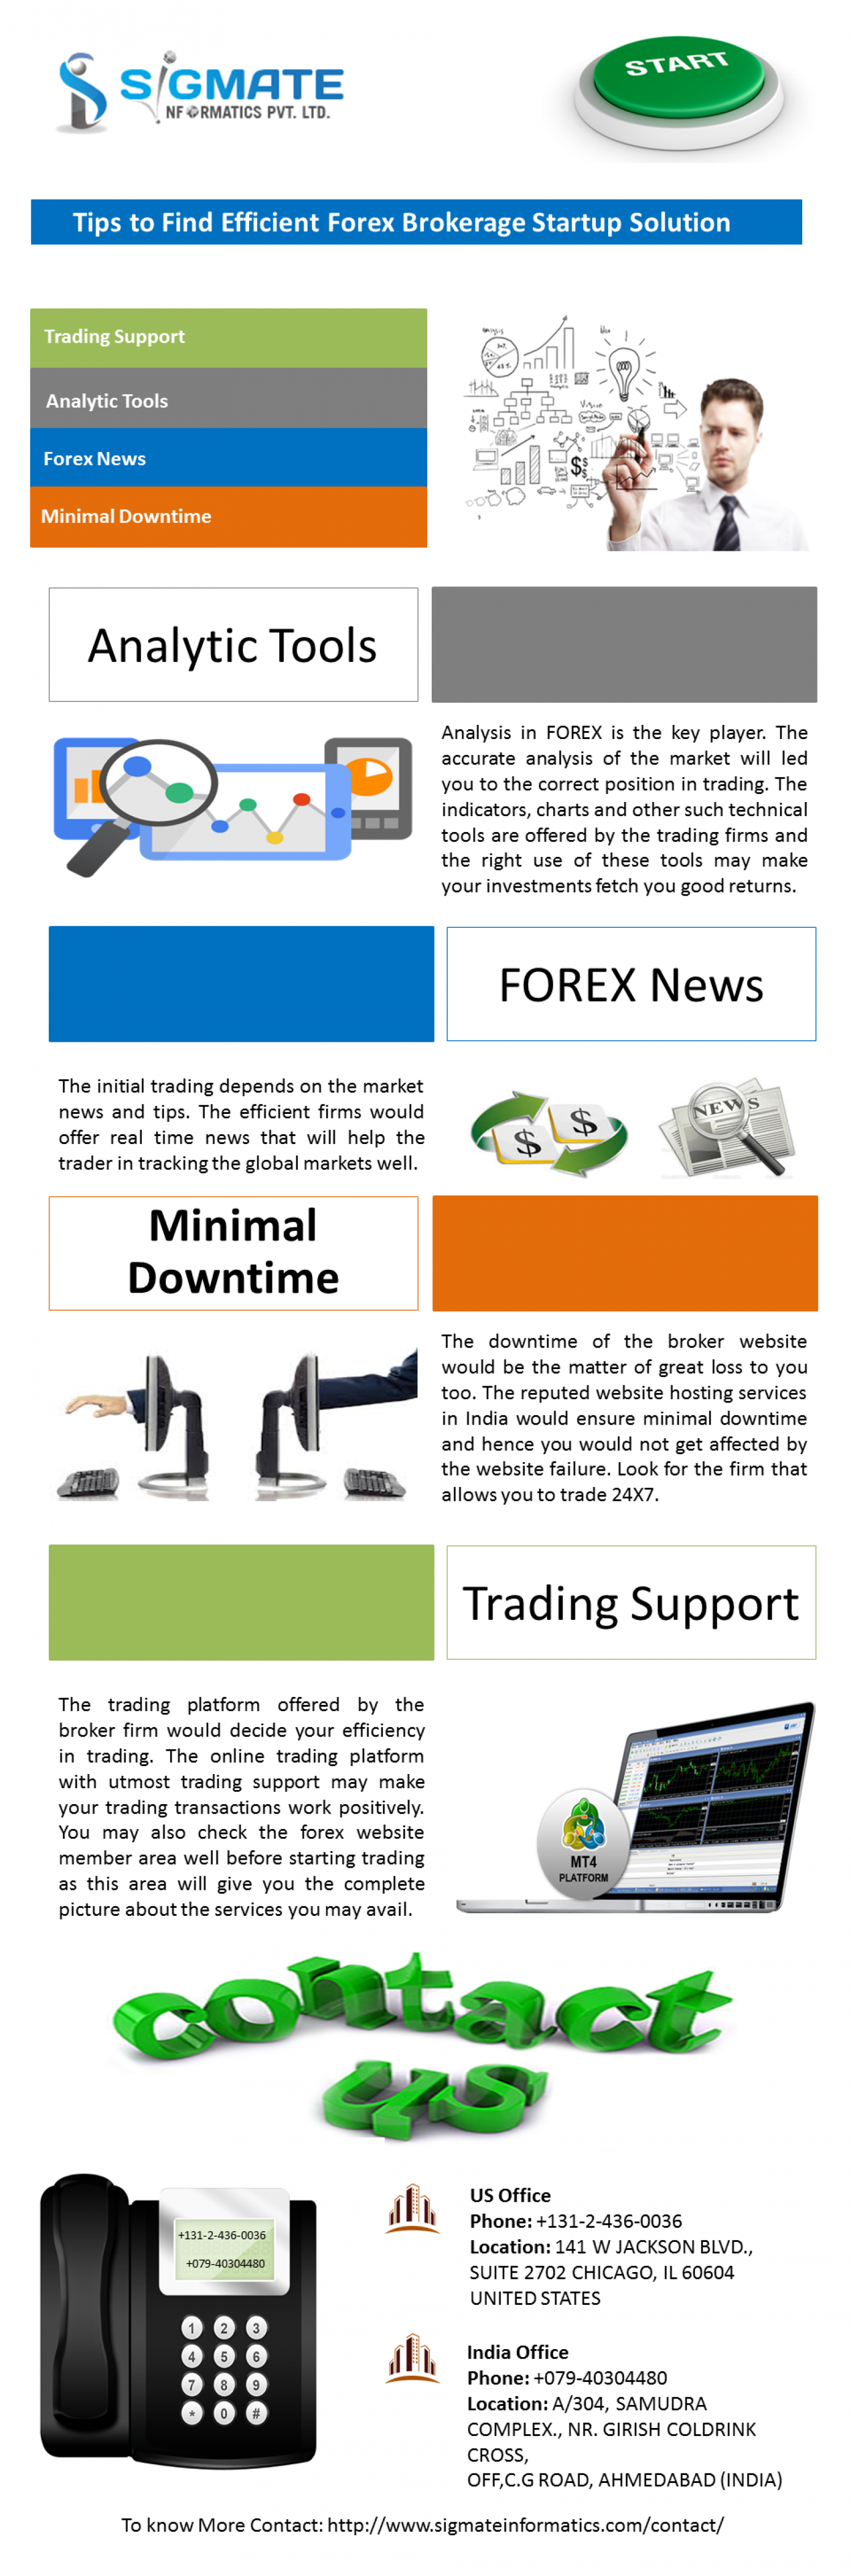 Tips to Find Efficient Forex Brokerage Startup Solution Infographic